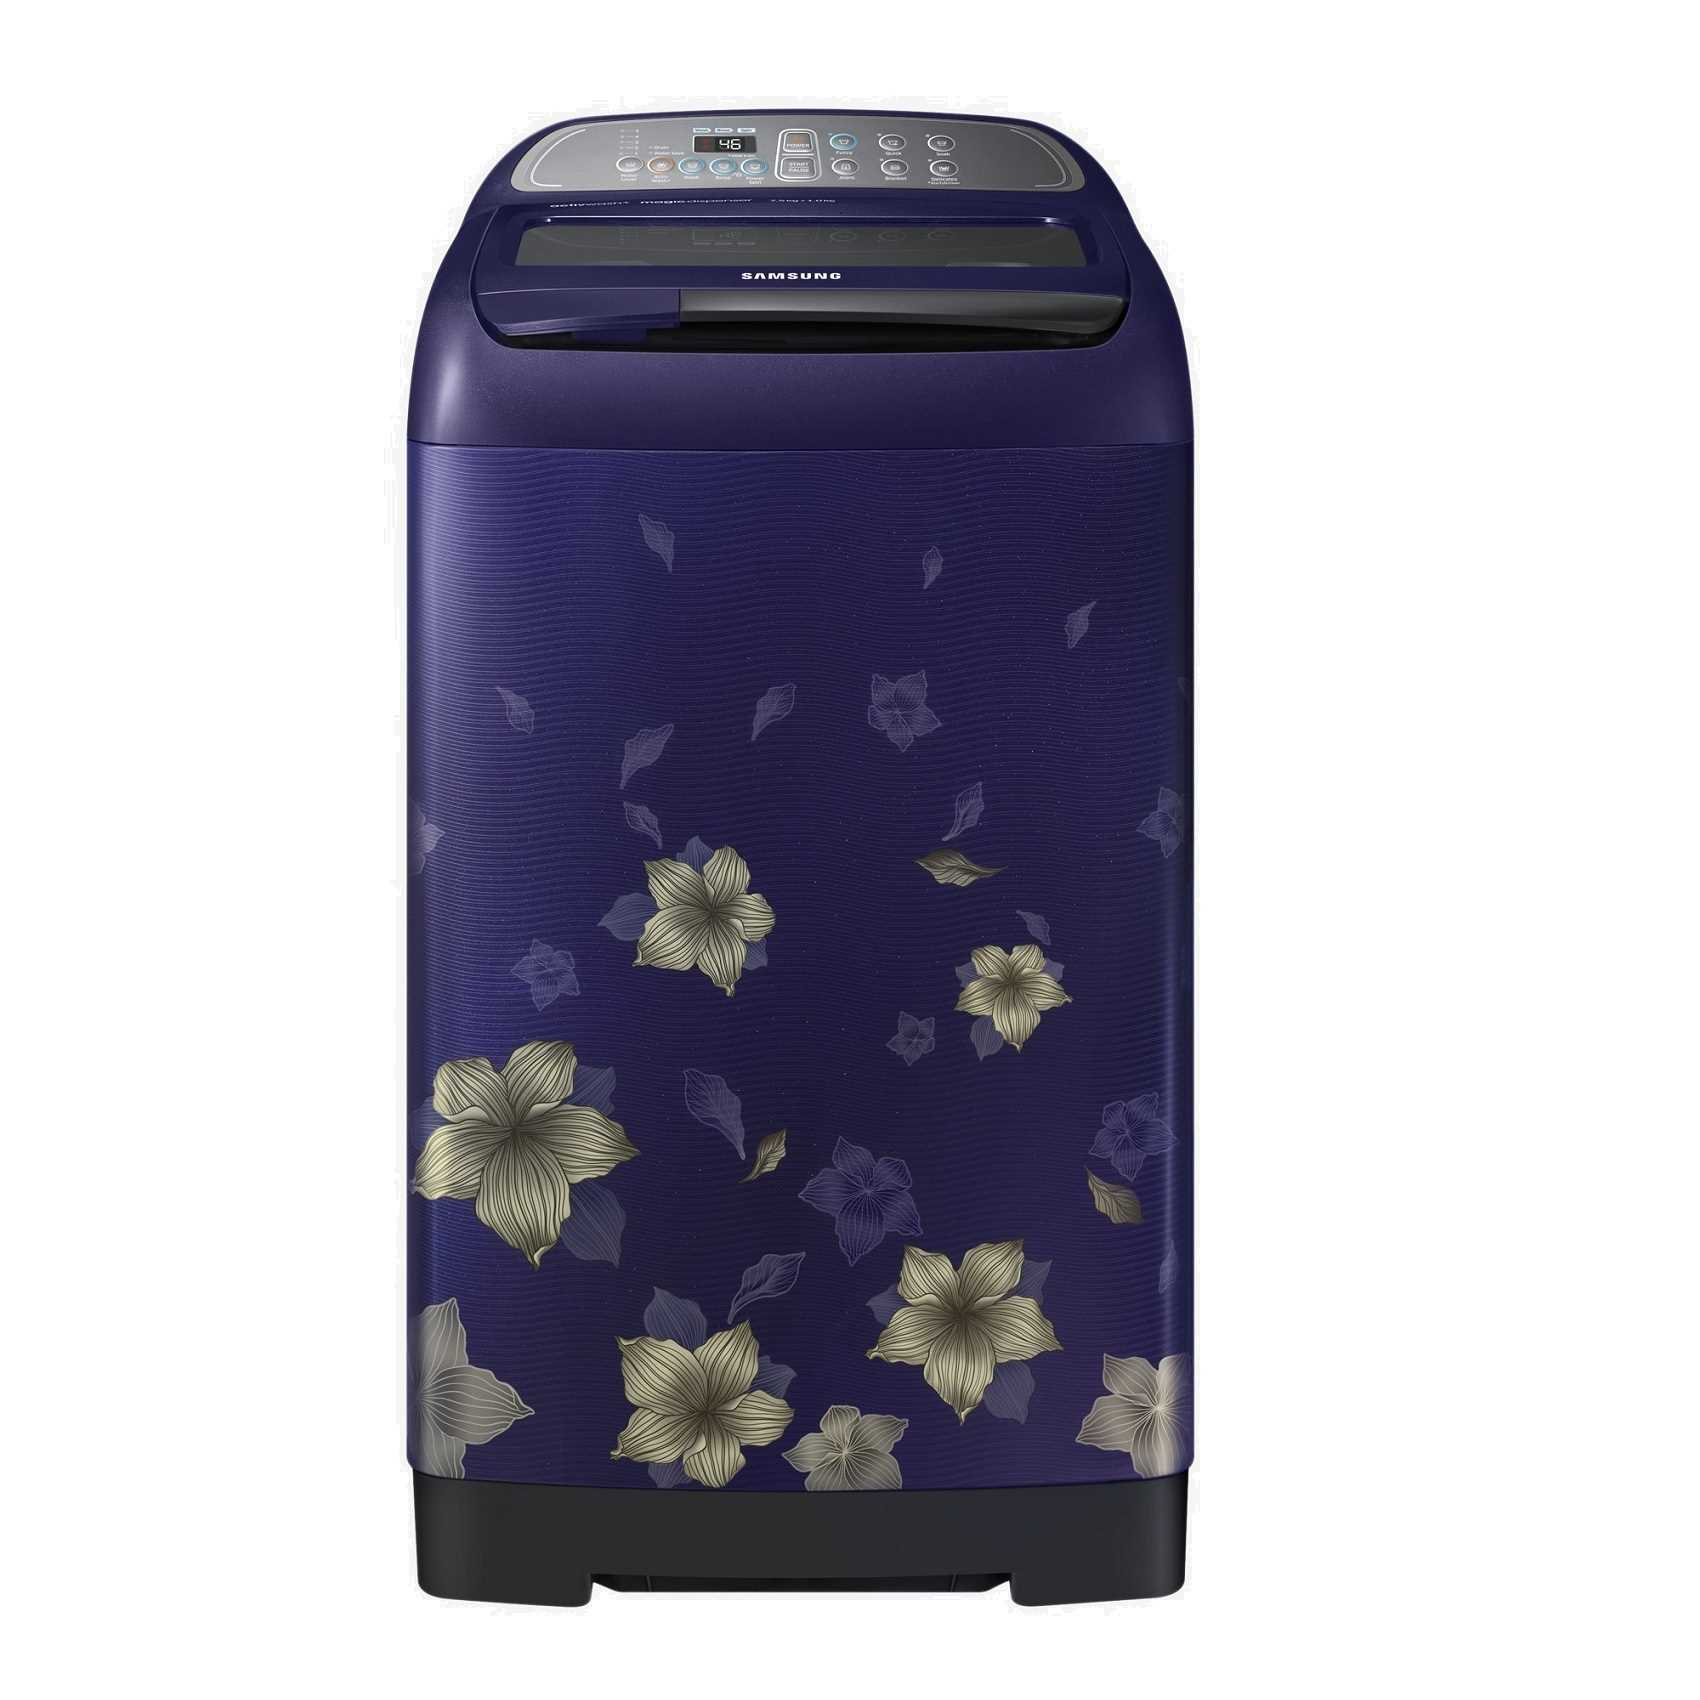 Samsung WA75M4010HL 7.5 Kg Fully Automatic Top Loading Washing Machine